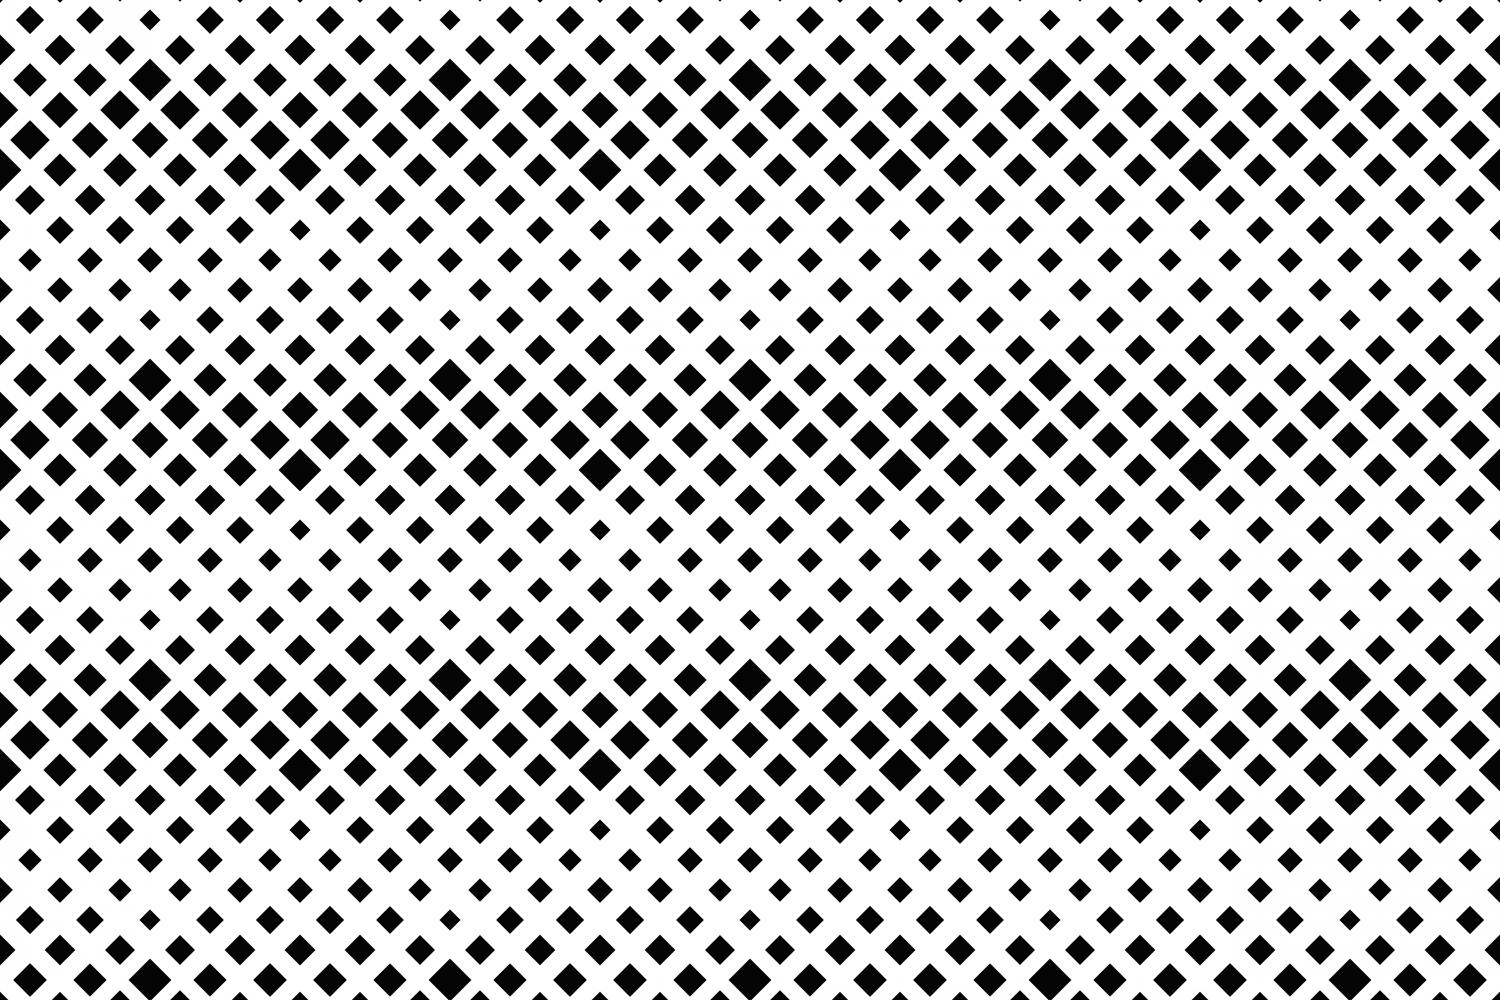 24 Seamless Square Patterns example image 4